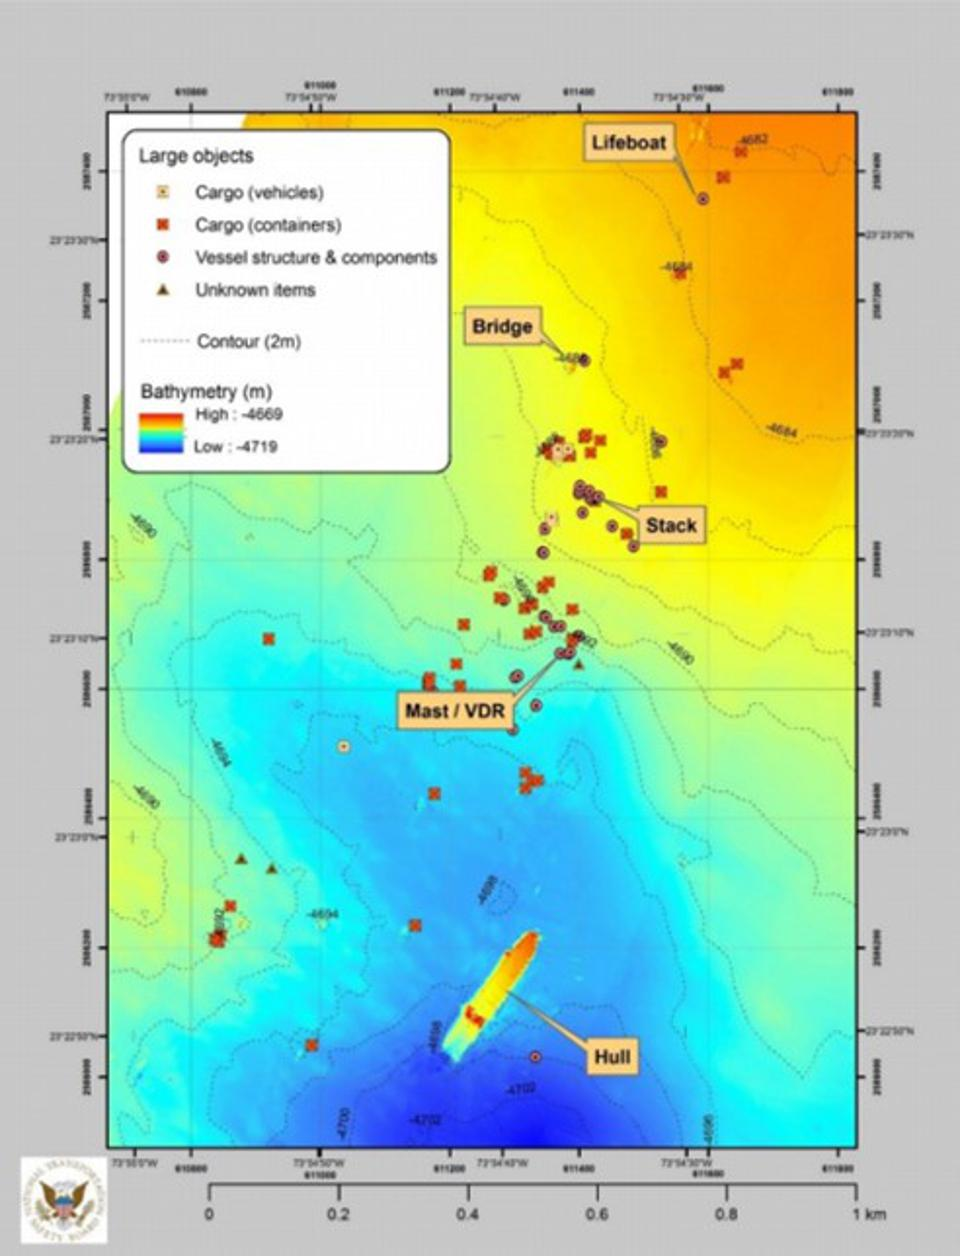 Map showing the VDR had gotten separated from the main hull of the vessel by the time it hit the seafloor